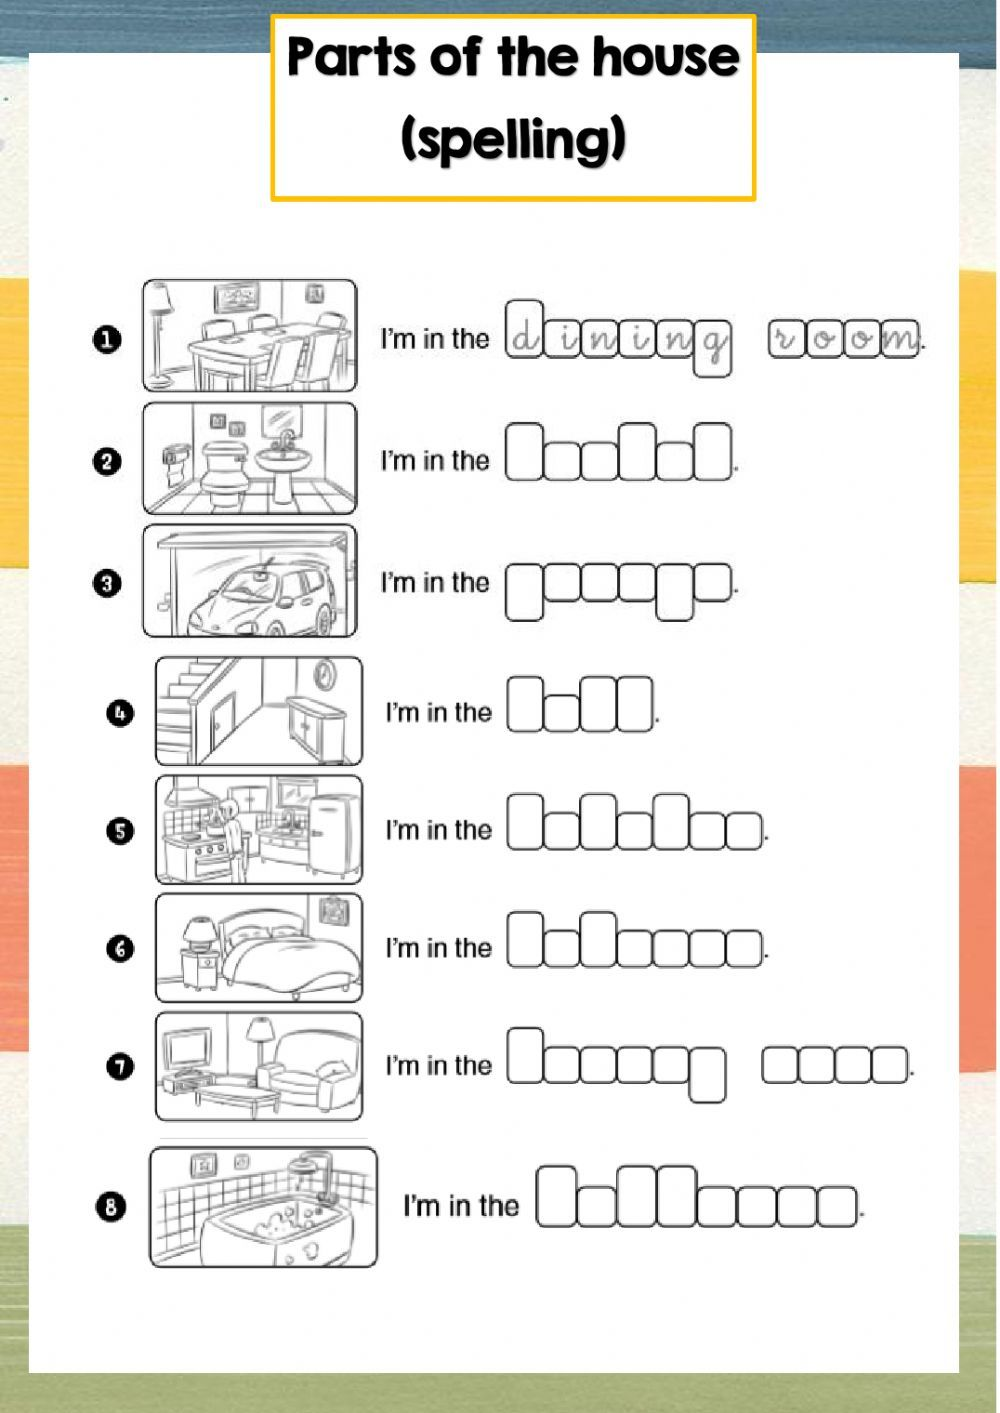 Parts of the house (spelling) Interactive worksheet in